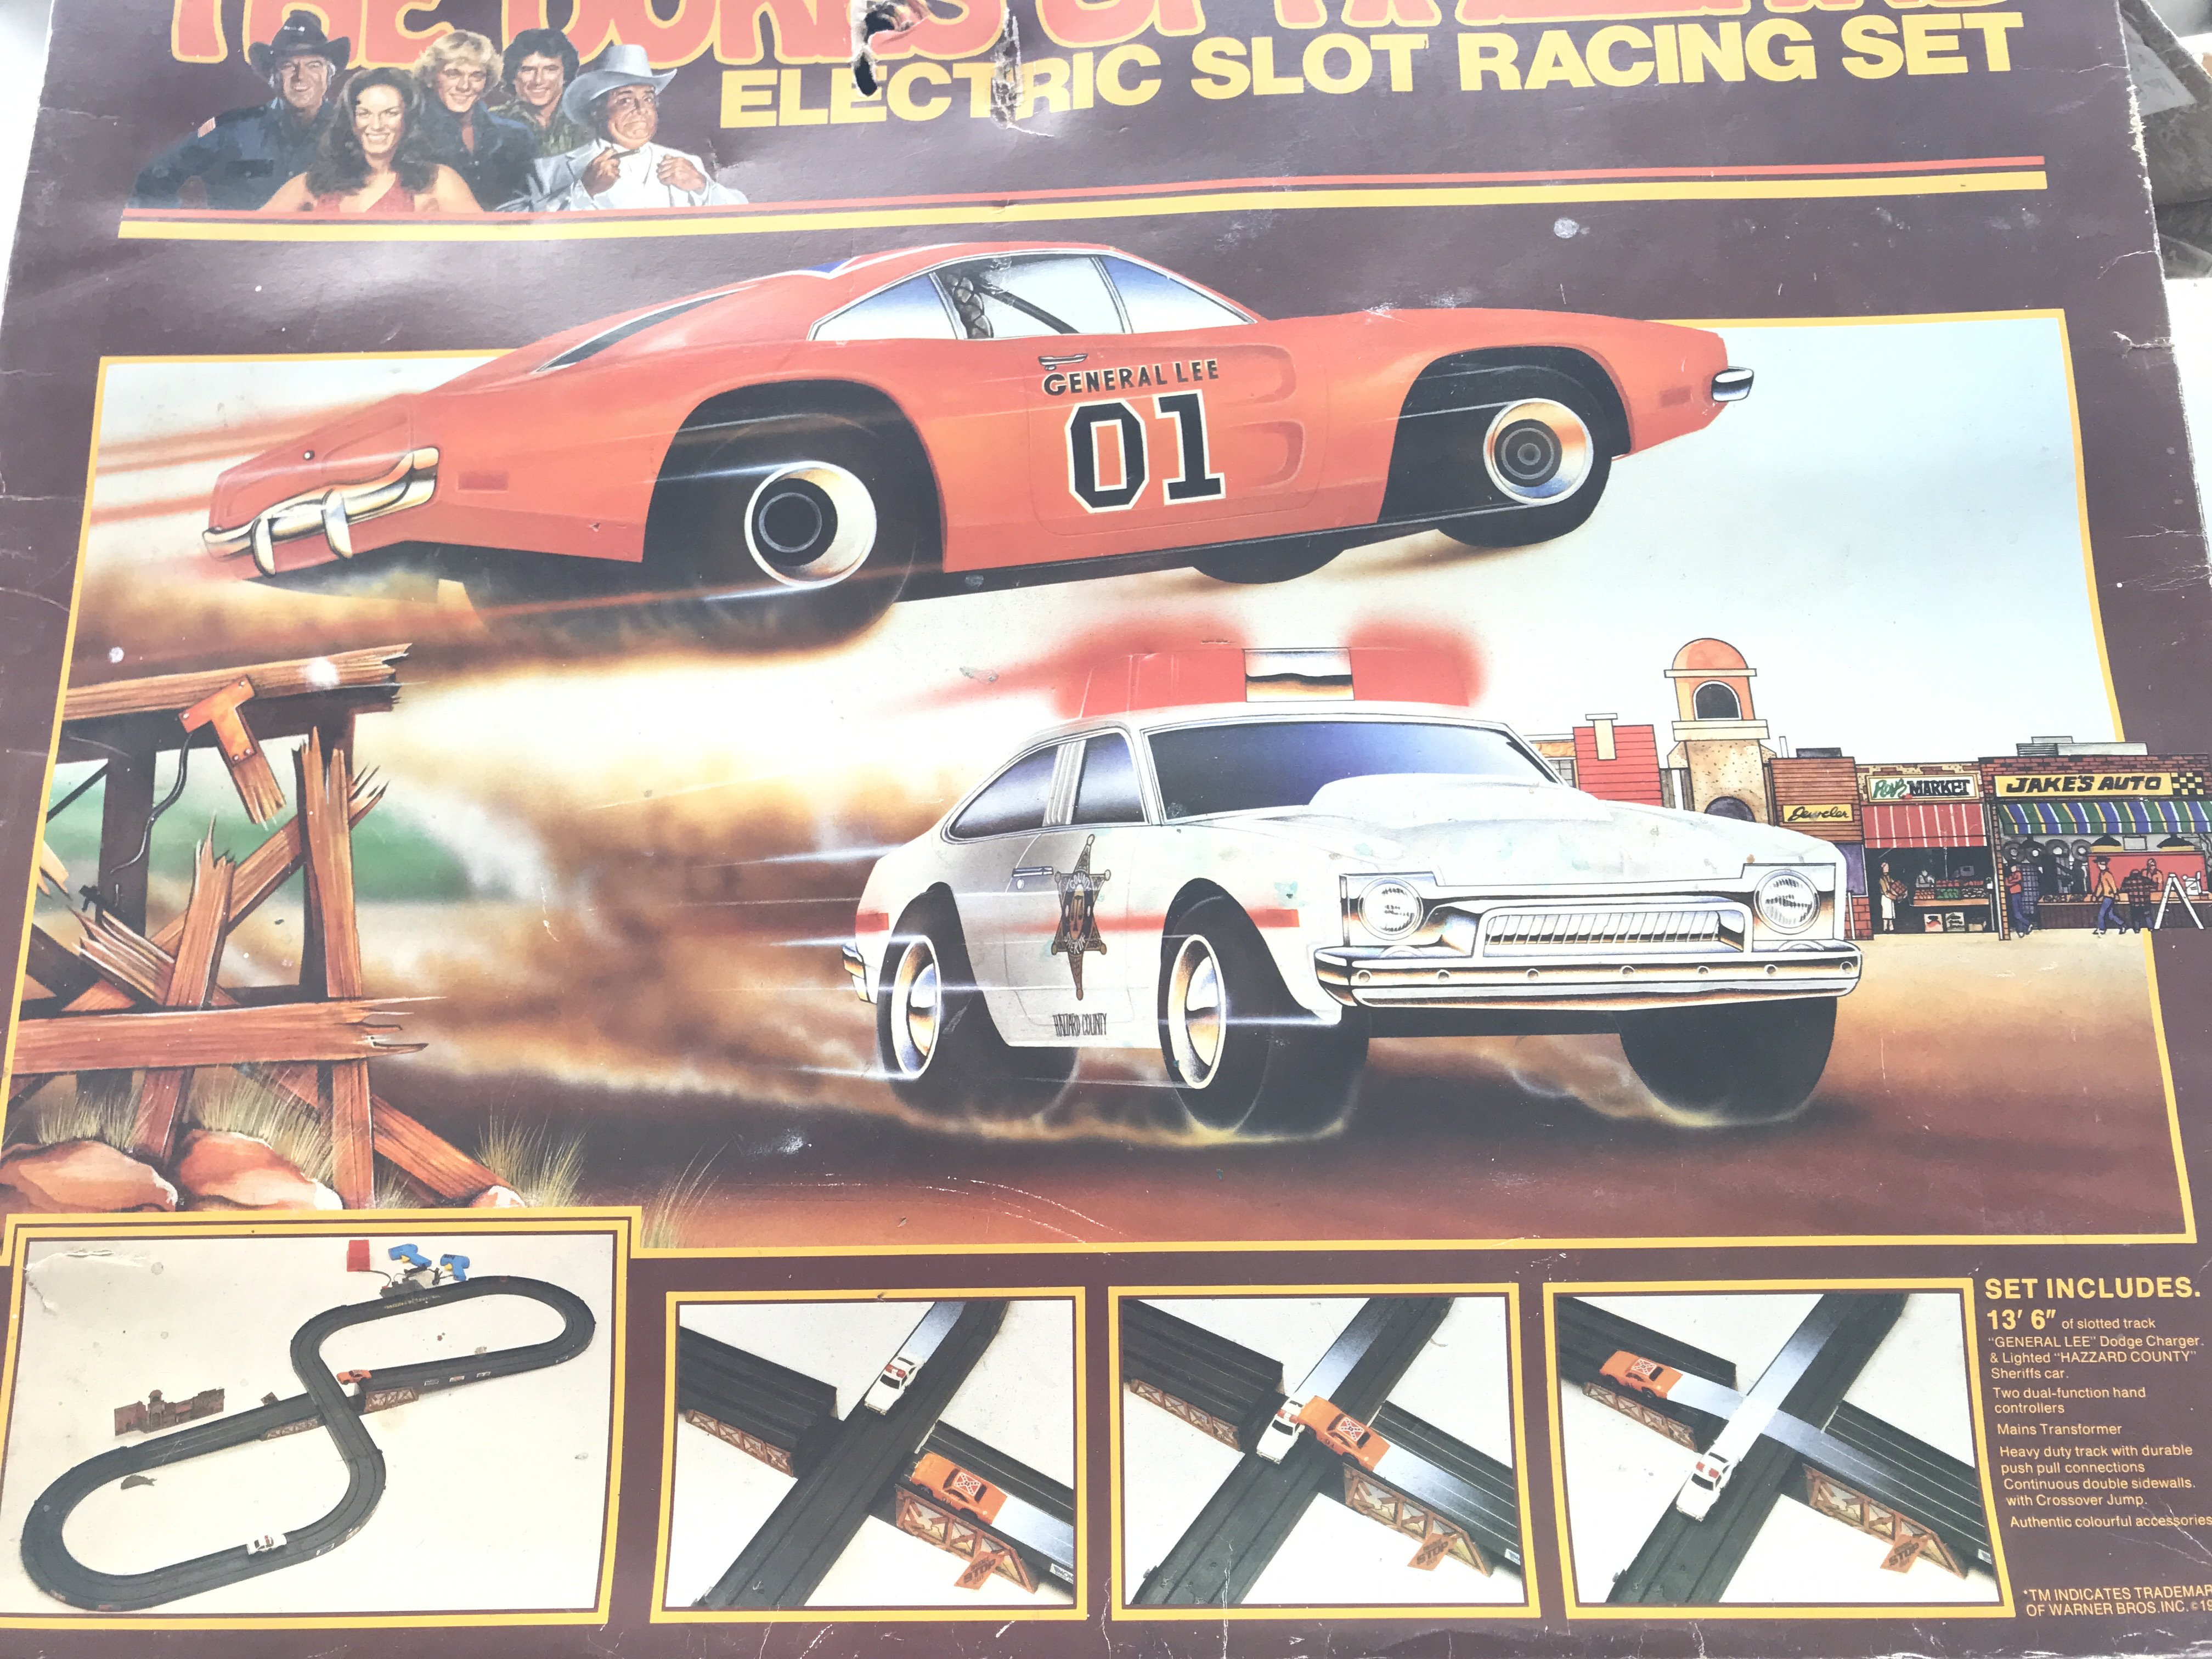 A Boxed Dukes Of Hazzard Electric Slot Racing Set.